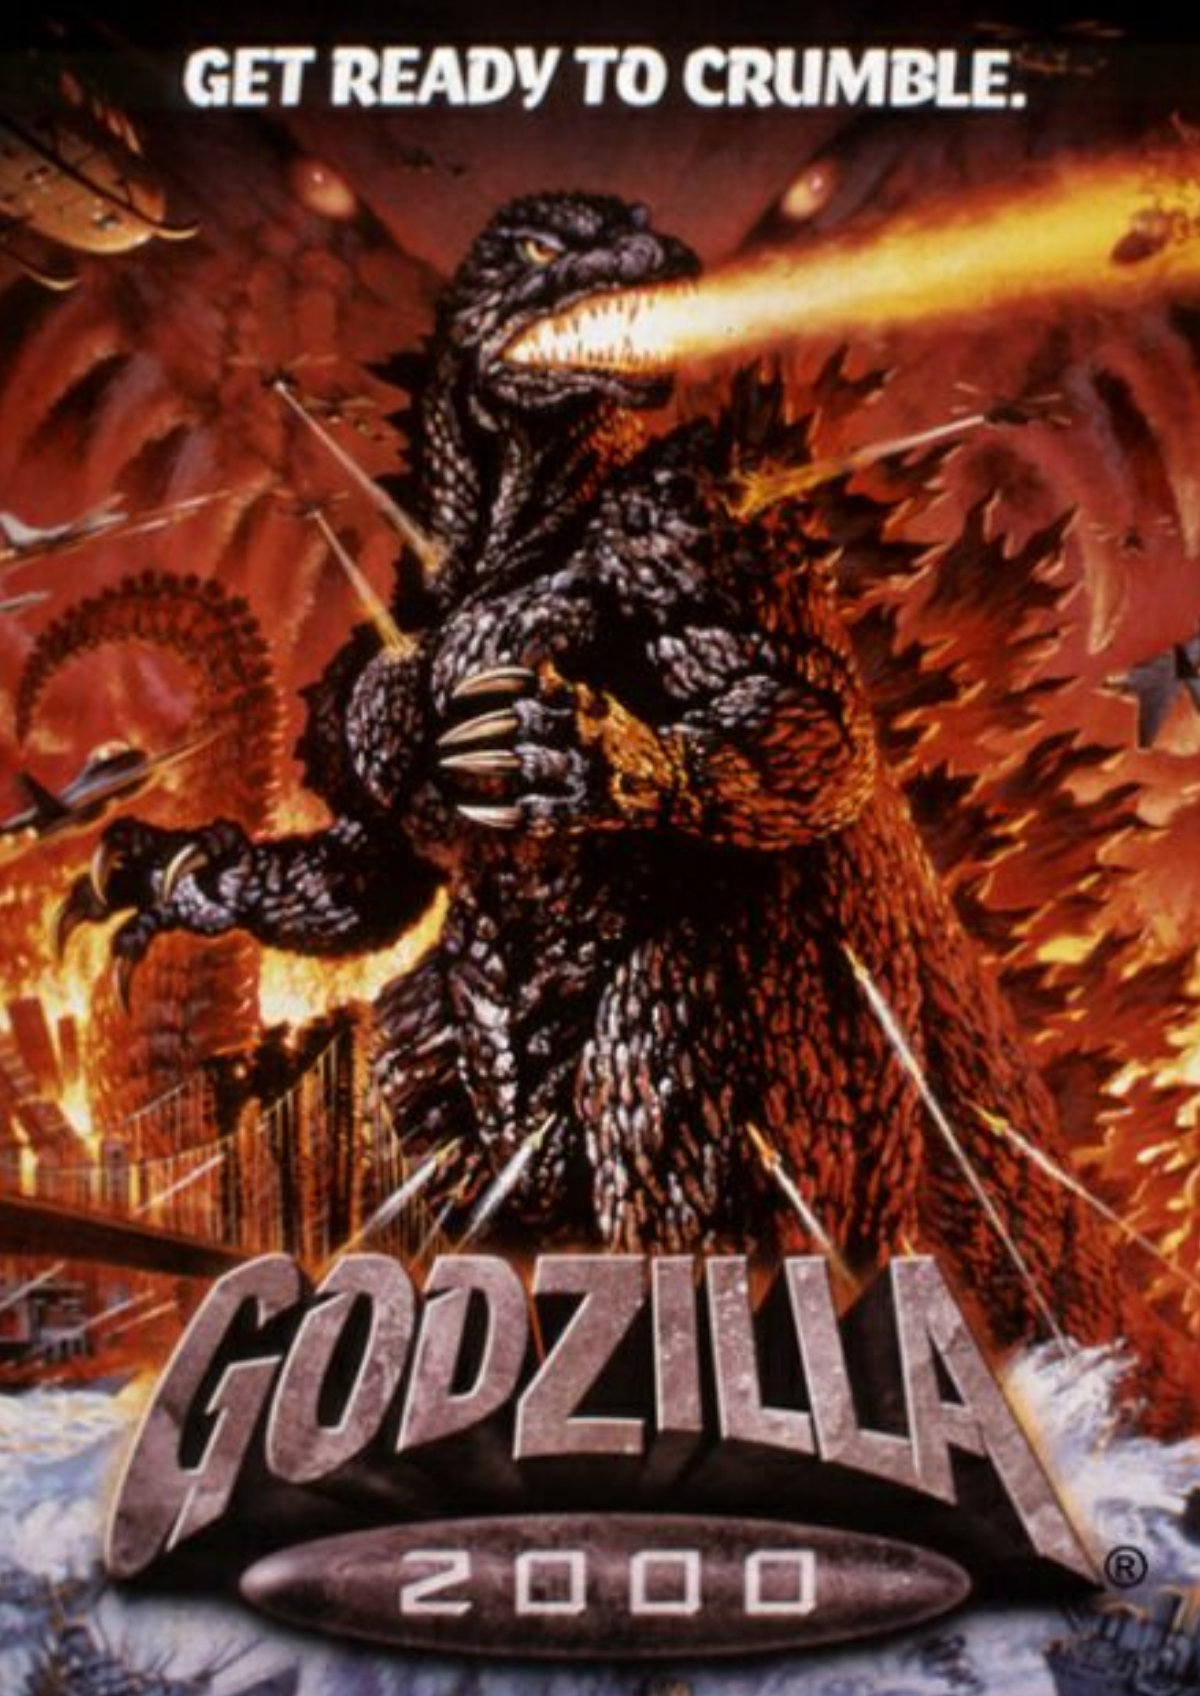 'Godzilla 2000' movie poster